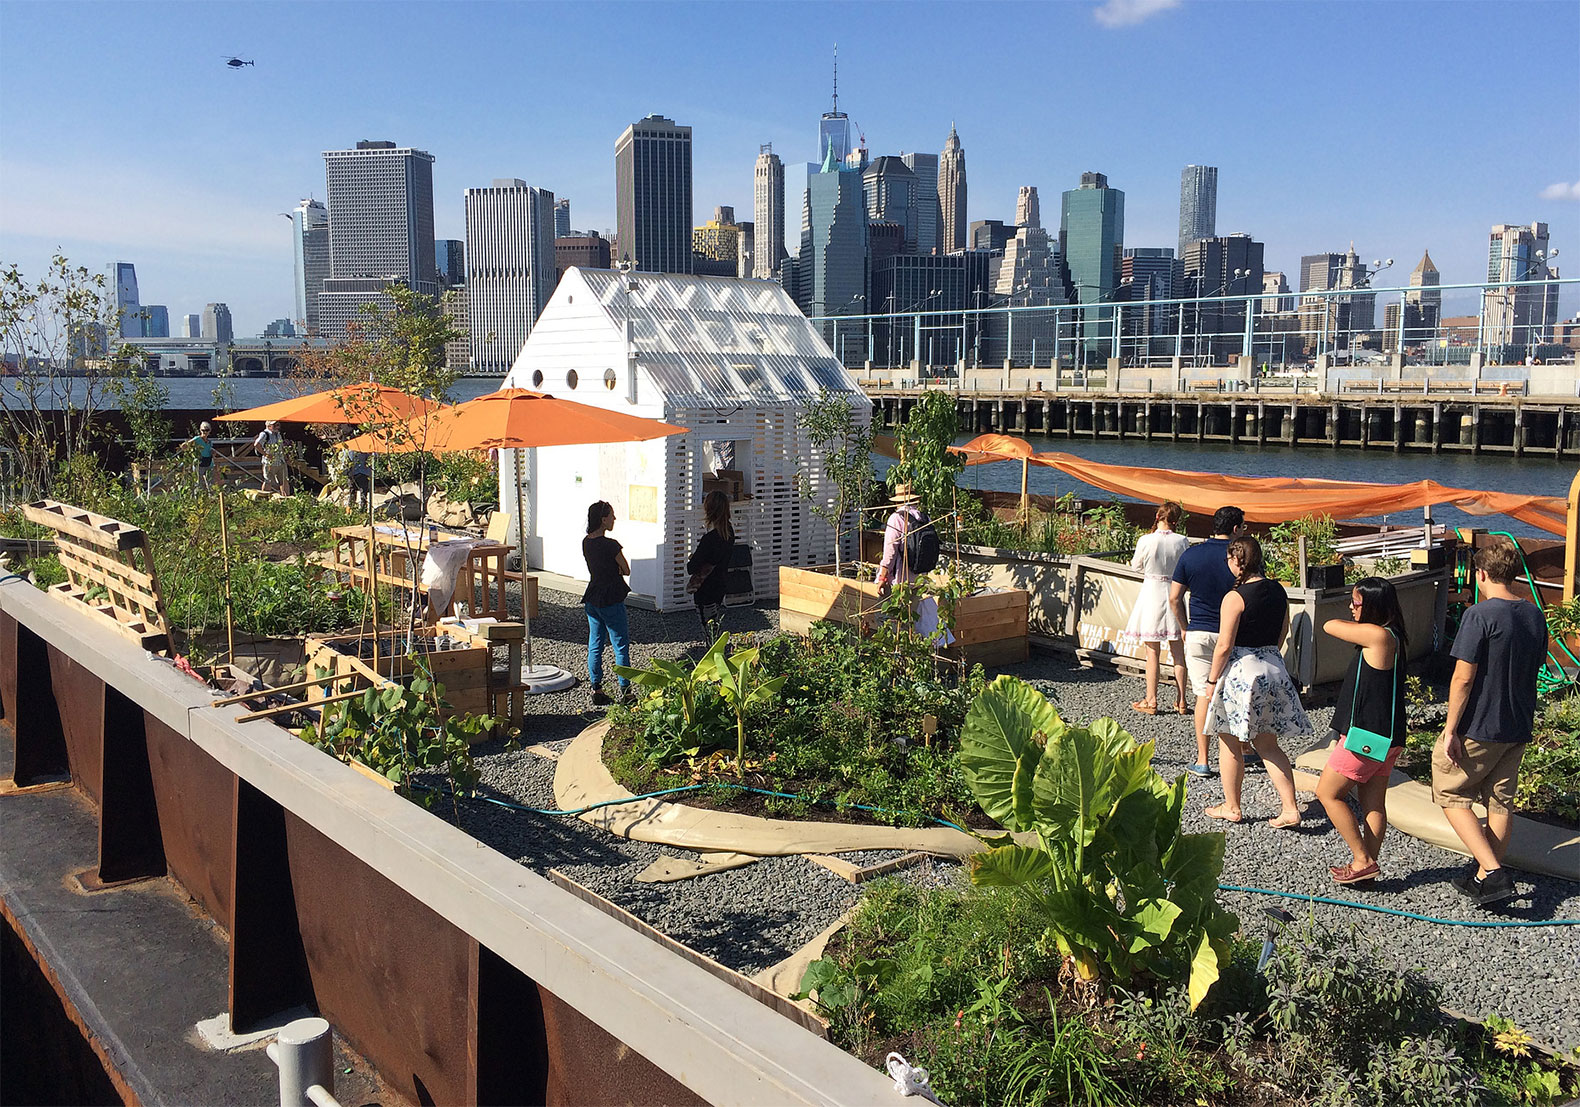 Come eat free food from this floating edible forest before it sets sail again